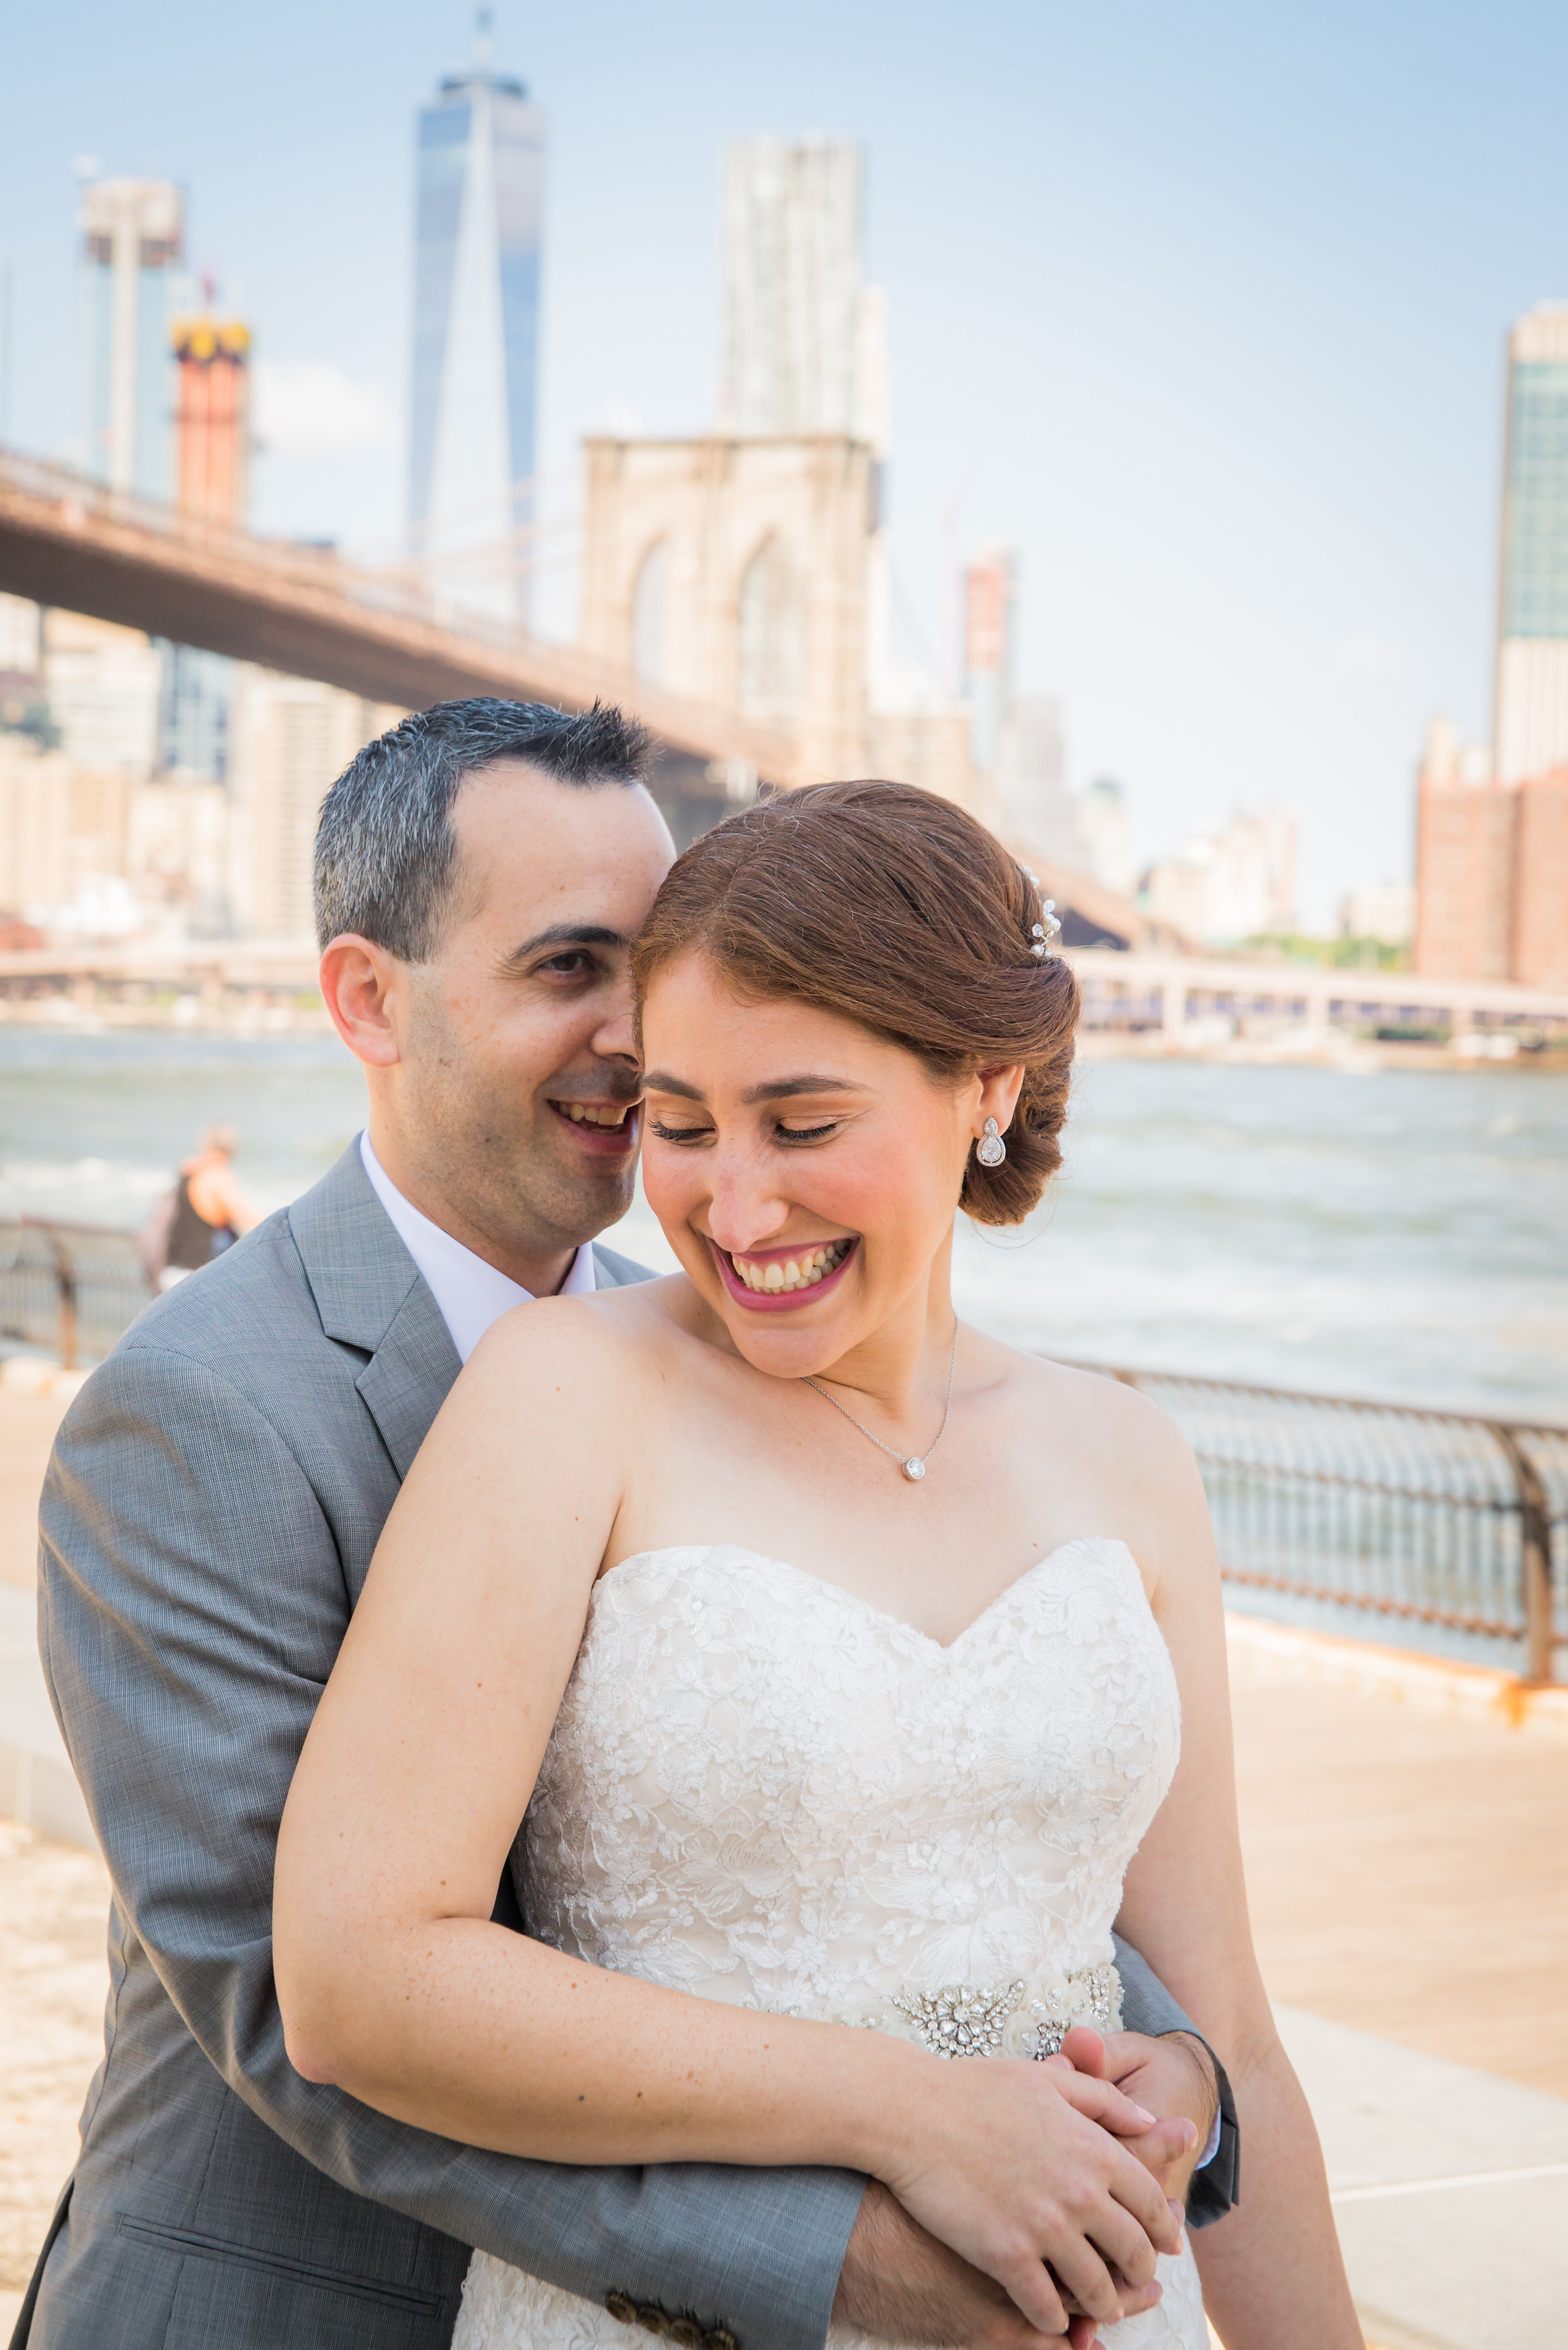 Allison & David Romantic Wedding in Dumbo & Chelsea Pears by Unveiled-Weddings.com #SunsetTerrace